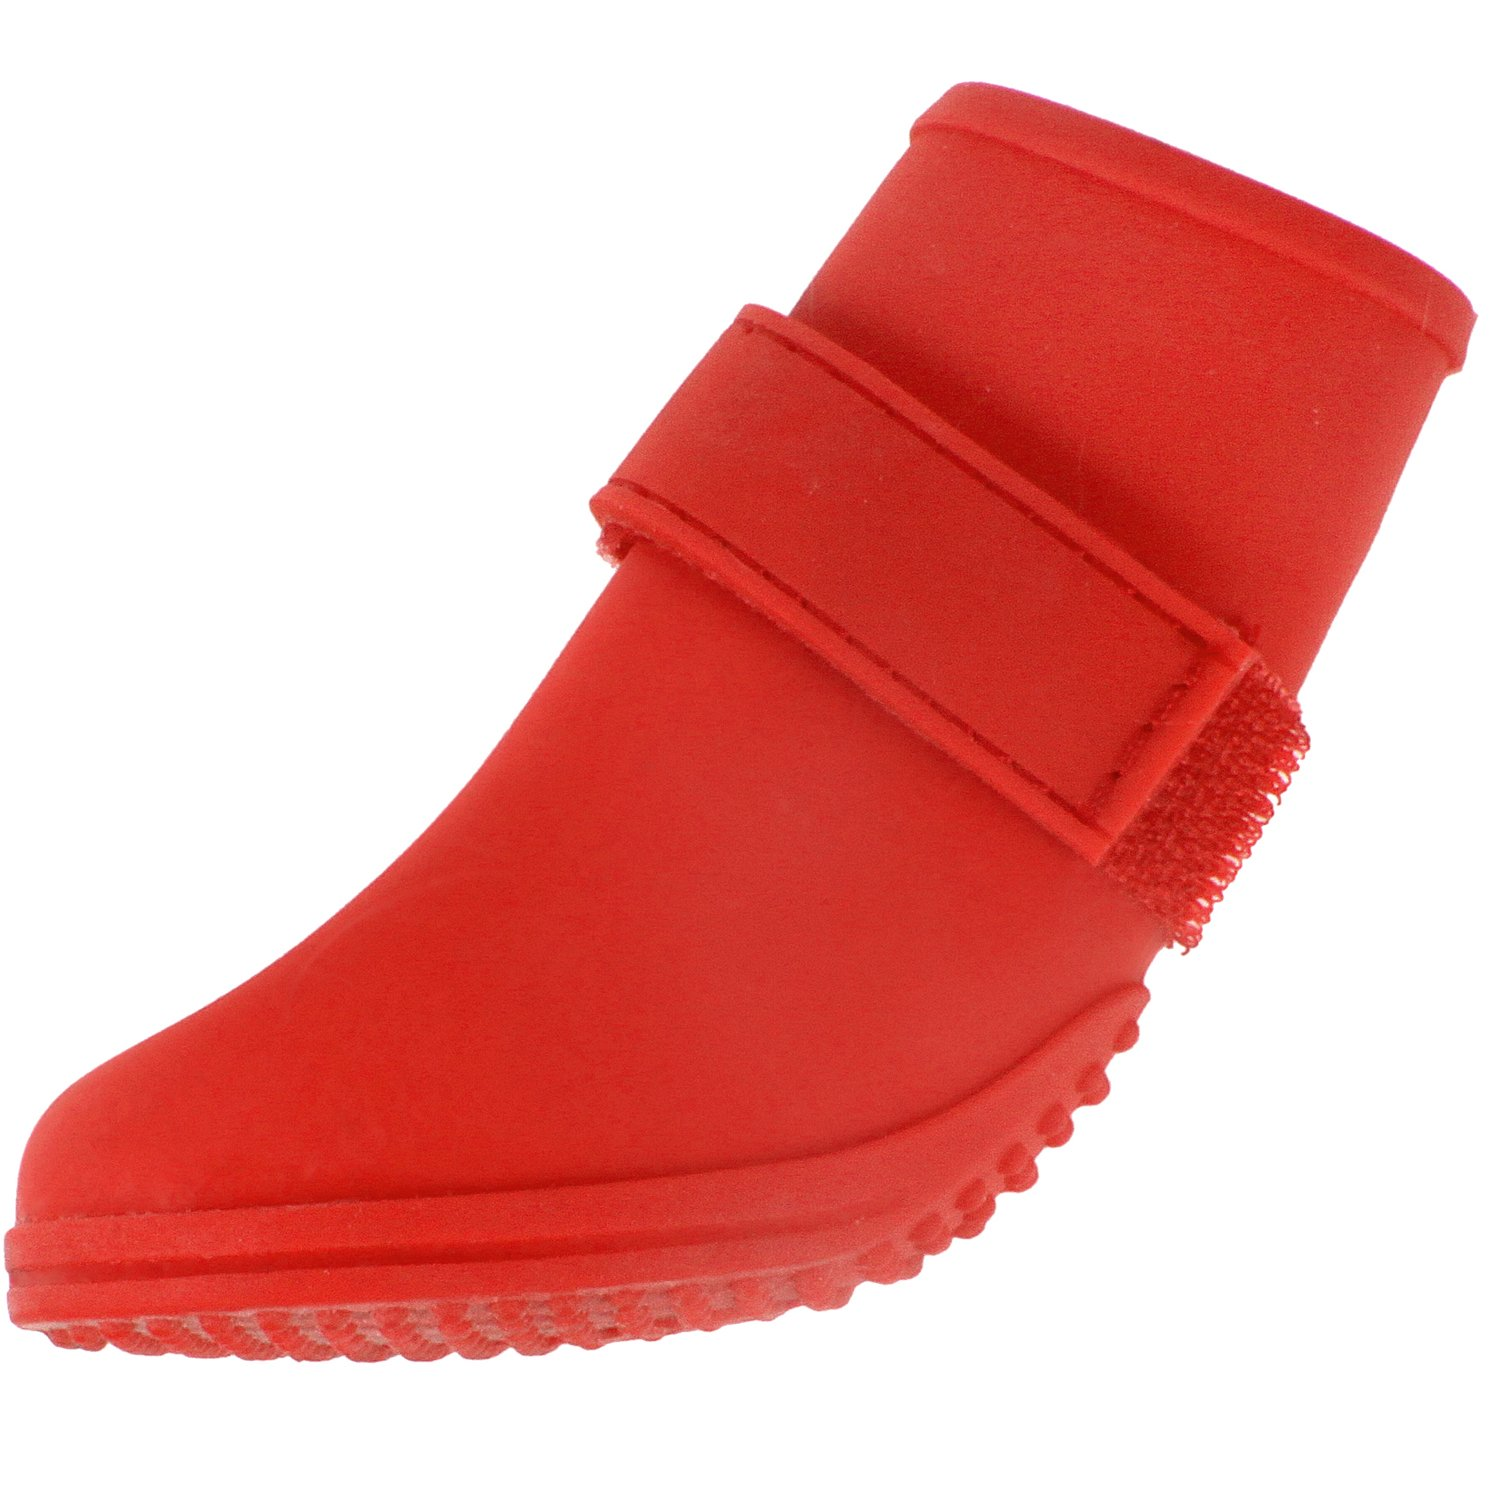 American Kennel Club Jelly Wellies Preimum Rain or Shine Waterproof Dog Boot with Extra Firm Gripping Soles- Medium, Red